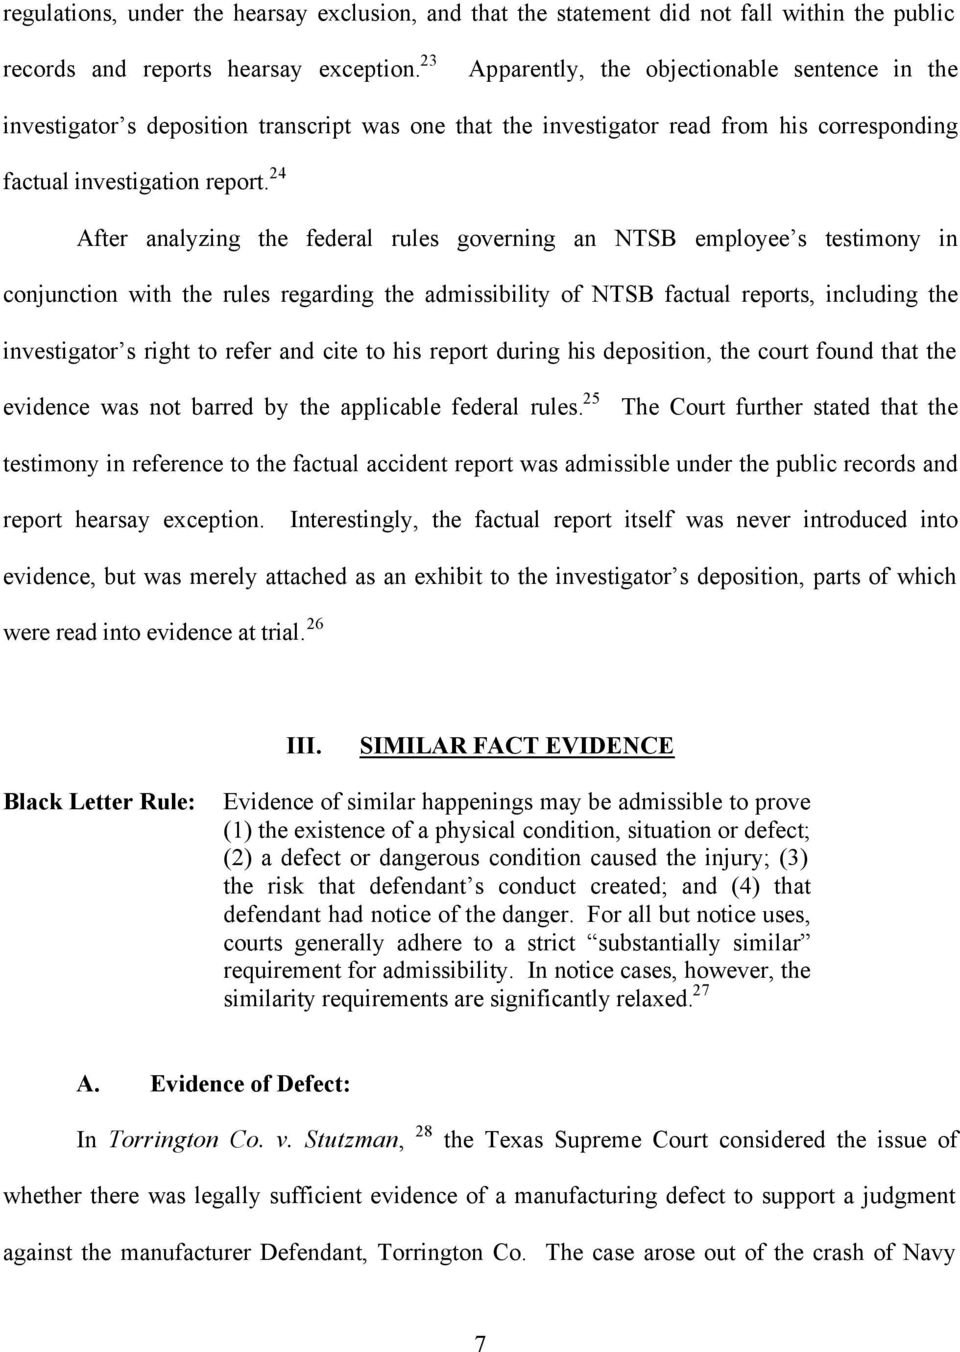 24 After analyzing the federal rules governing an NTSB employee s testimony in conjunction with the rules regarding the admissibility of NTSB factual reports, including the investigator s right to